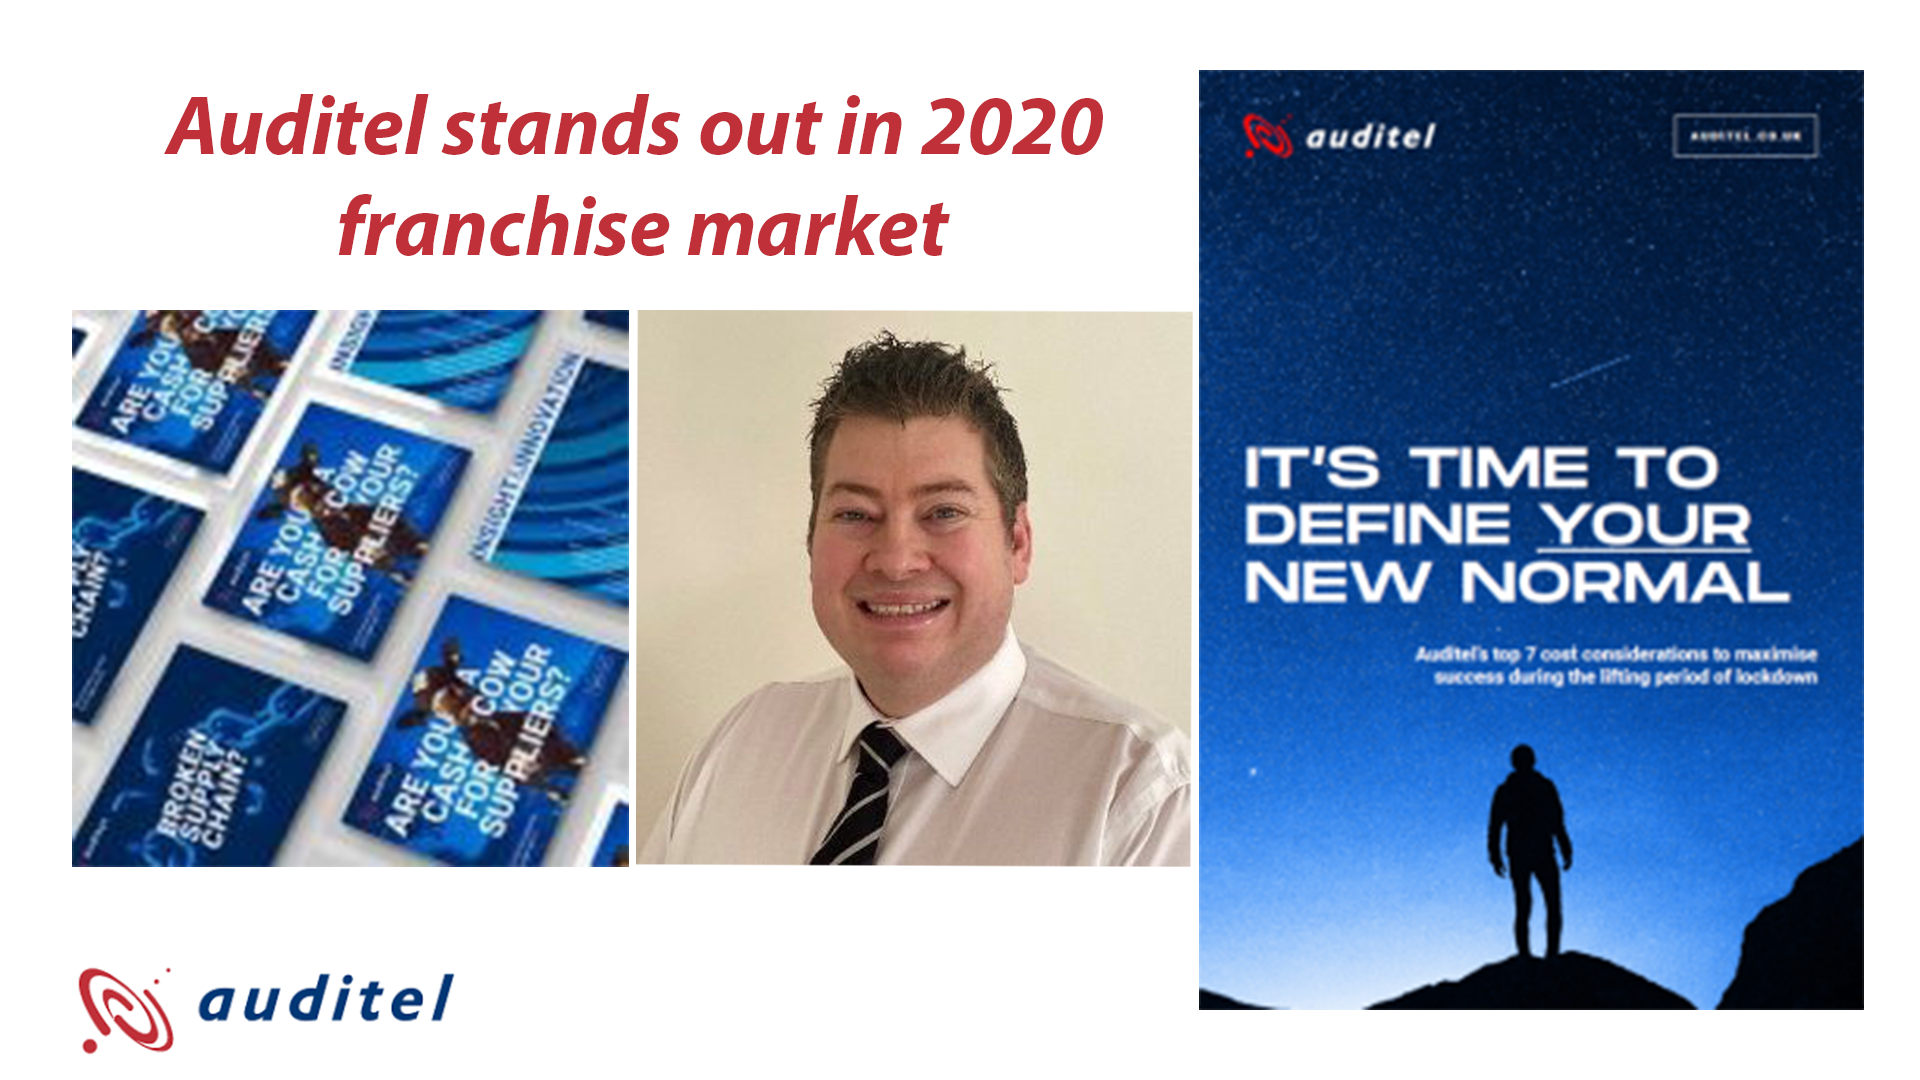 Auditel continues to stand out in the franchise market, with five further franchisees joining in July and August 2020